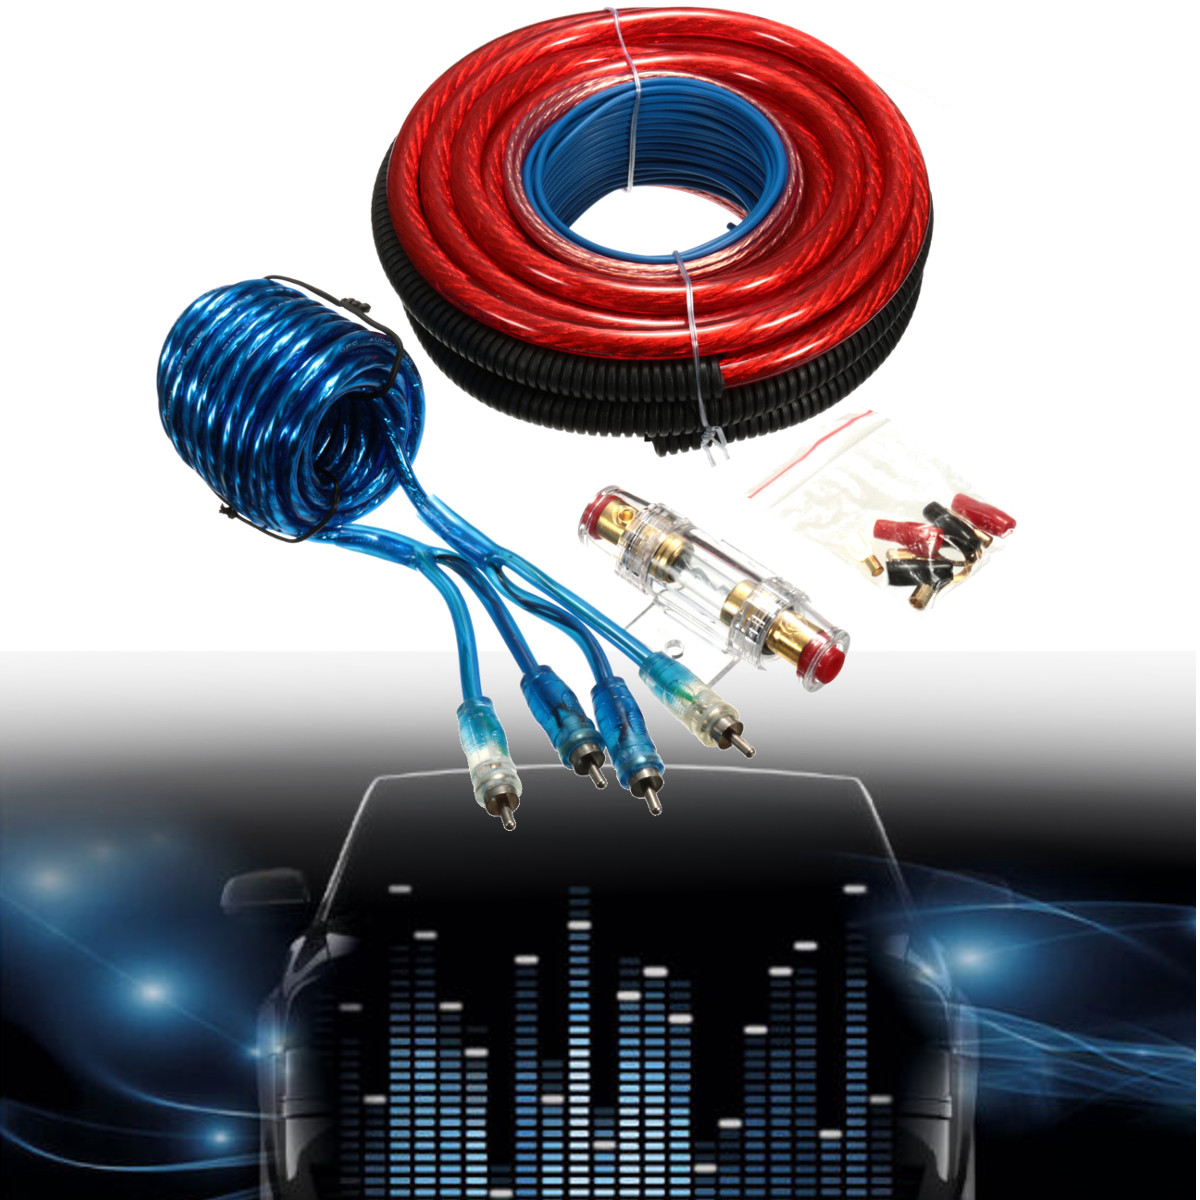 Buy Gauge 4 Wire And Get Free Shipping On Pro Amplifier Amp Install Wiring Kit Complete Car Audio Cables